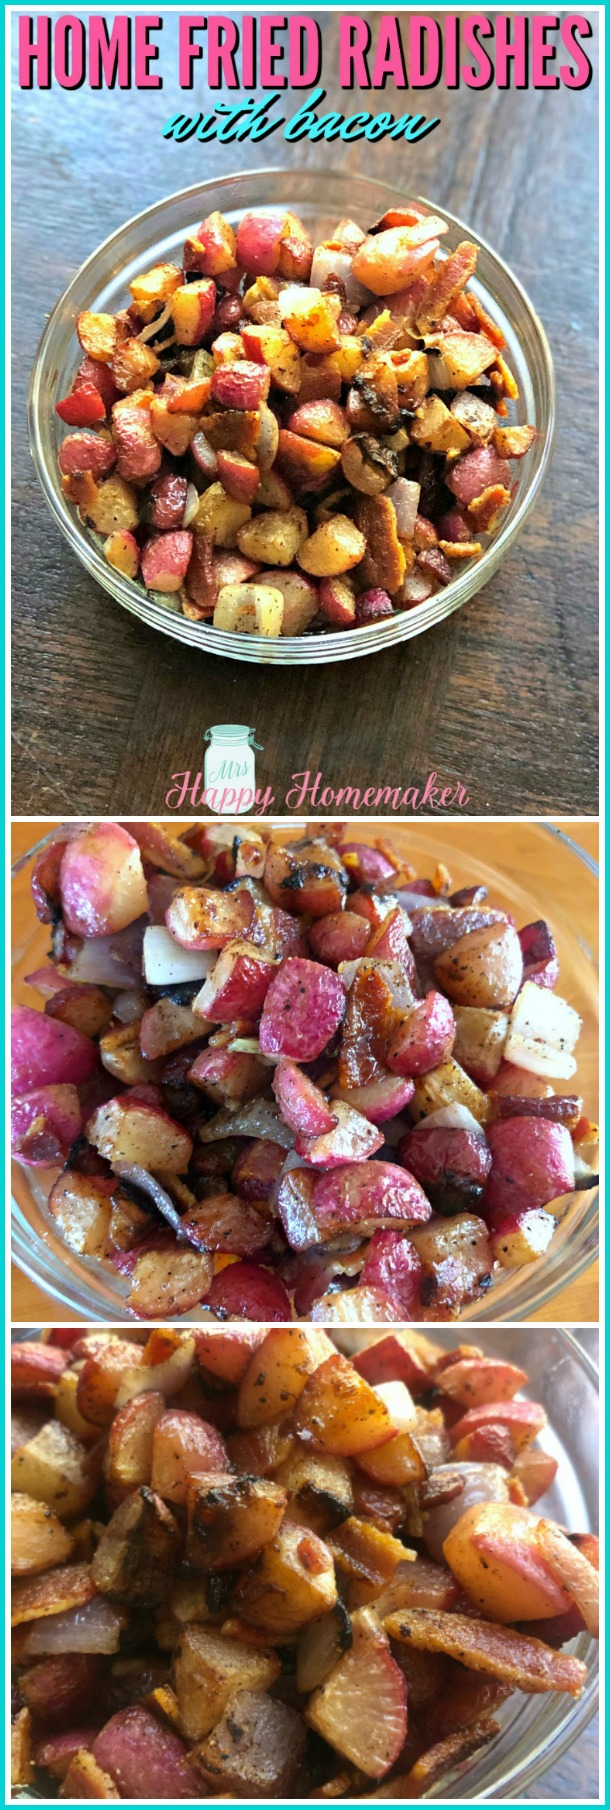 Home Fried Radishes with Bacon | MrsHappyHomemaker.com @MrsHappyHomemaker #friedradishes #homefries #keto #lowcarb #whole30 #radishes #bacon